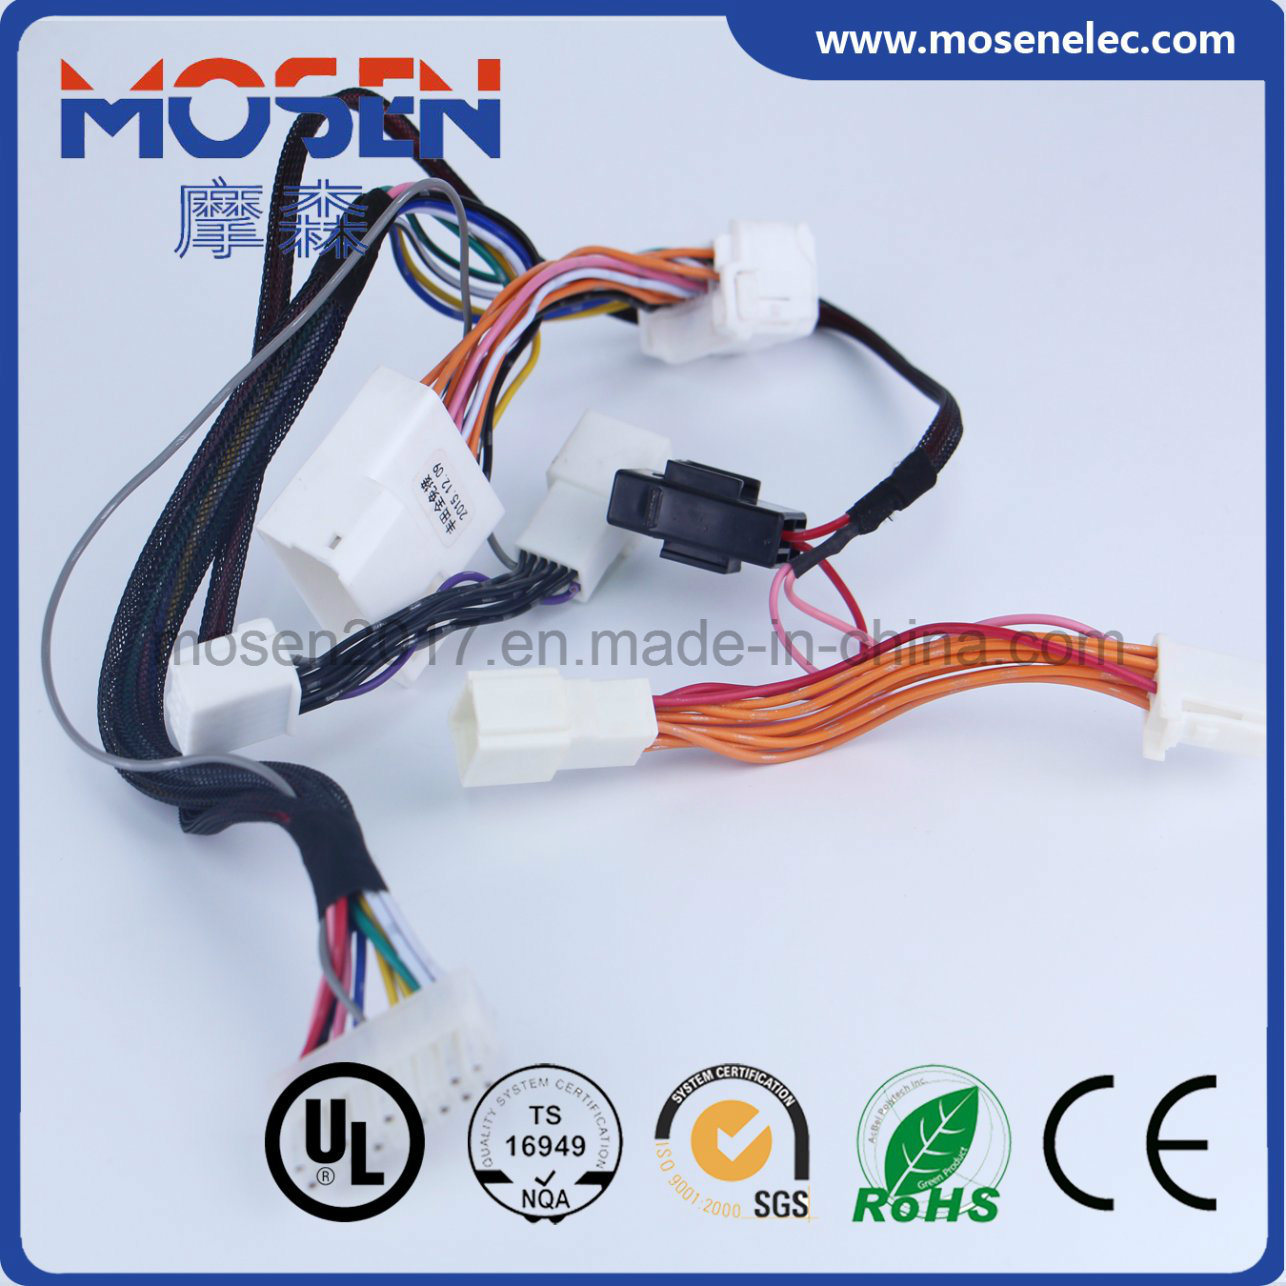 Toyota Sun Roof Auto Wiring Harness Avss Wire Yazaki Connector For Buy Automotive Mazda 3 5 Ignition System 14awg Manufacture